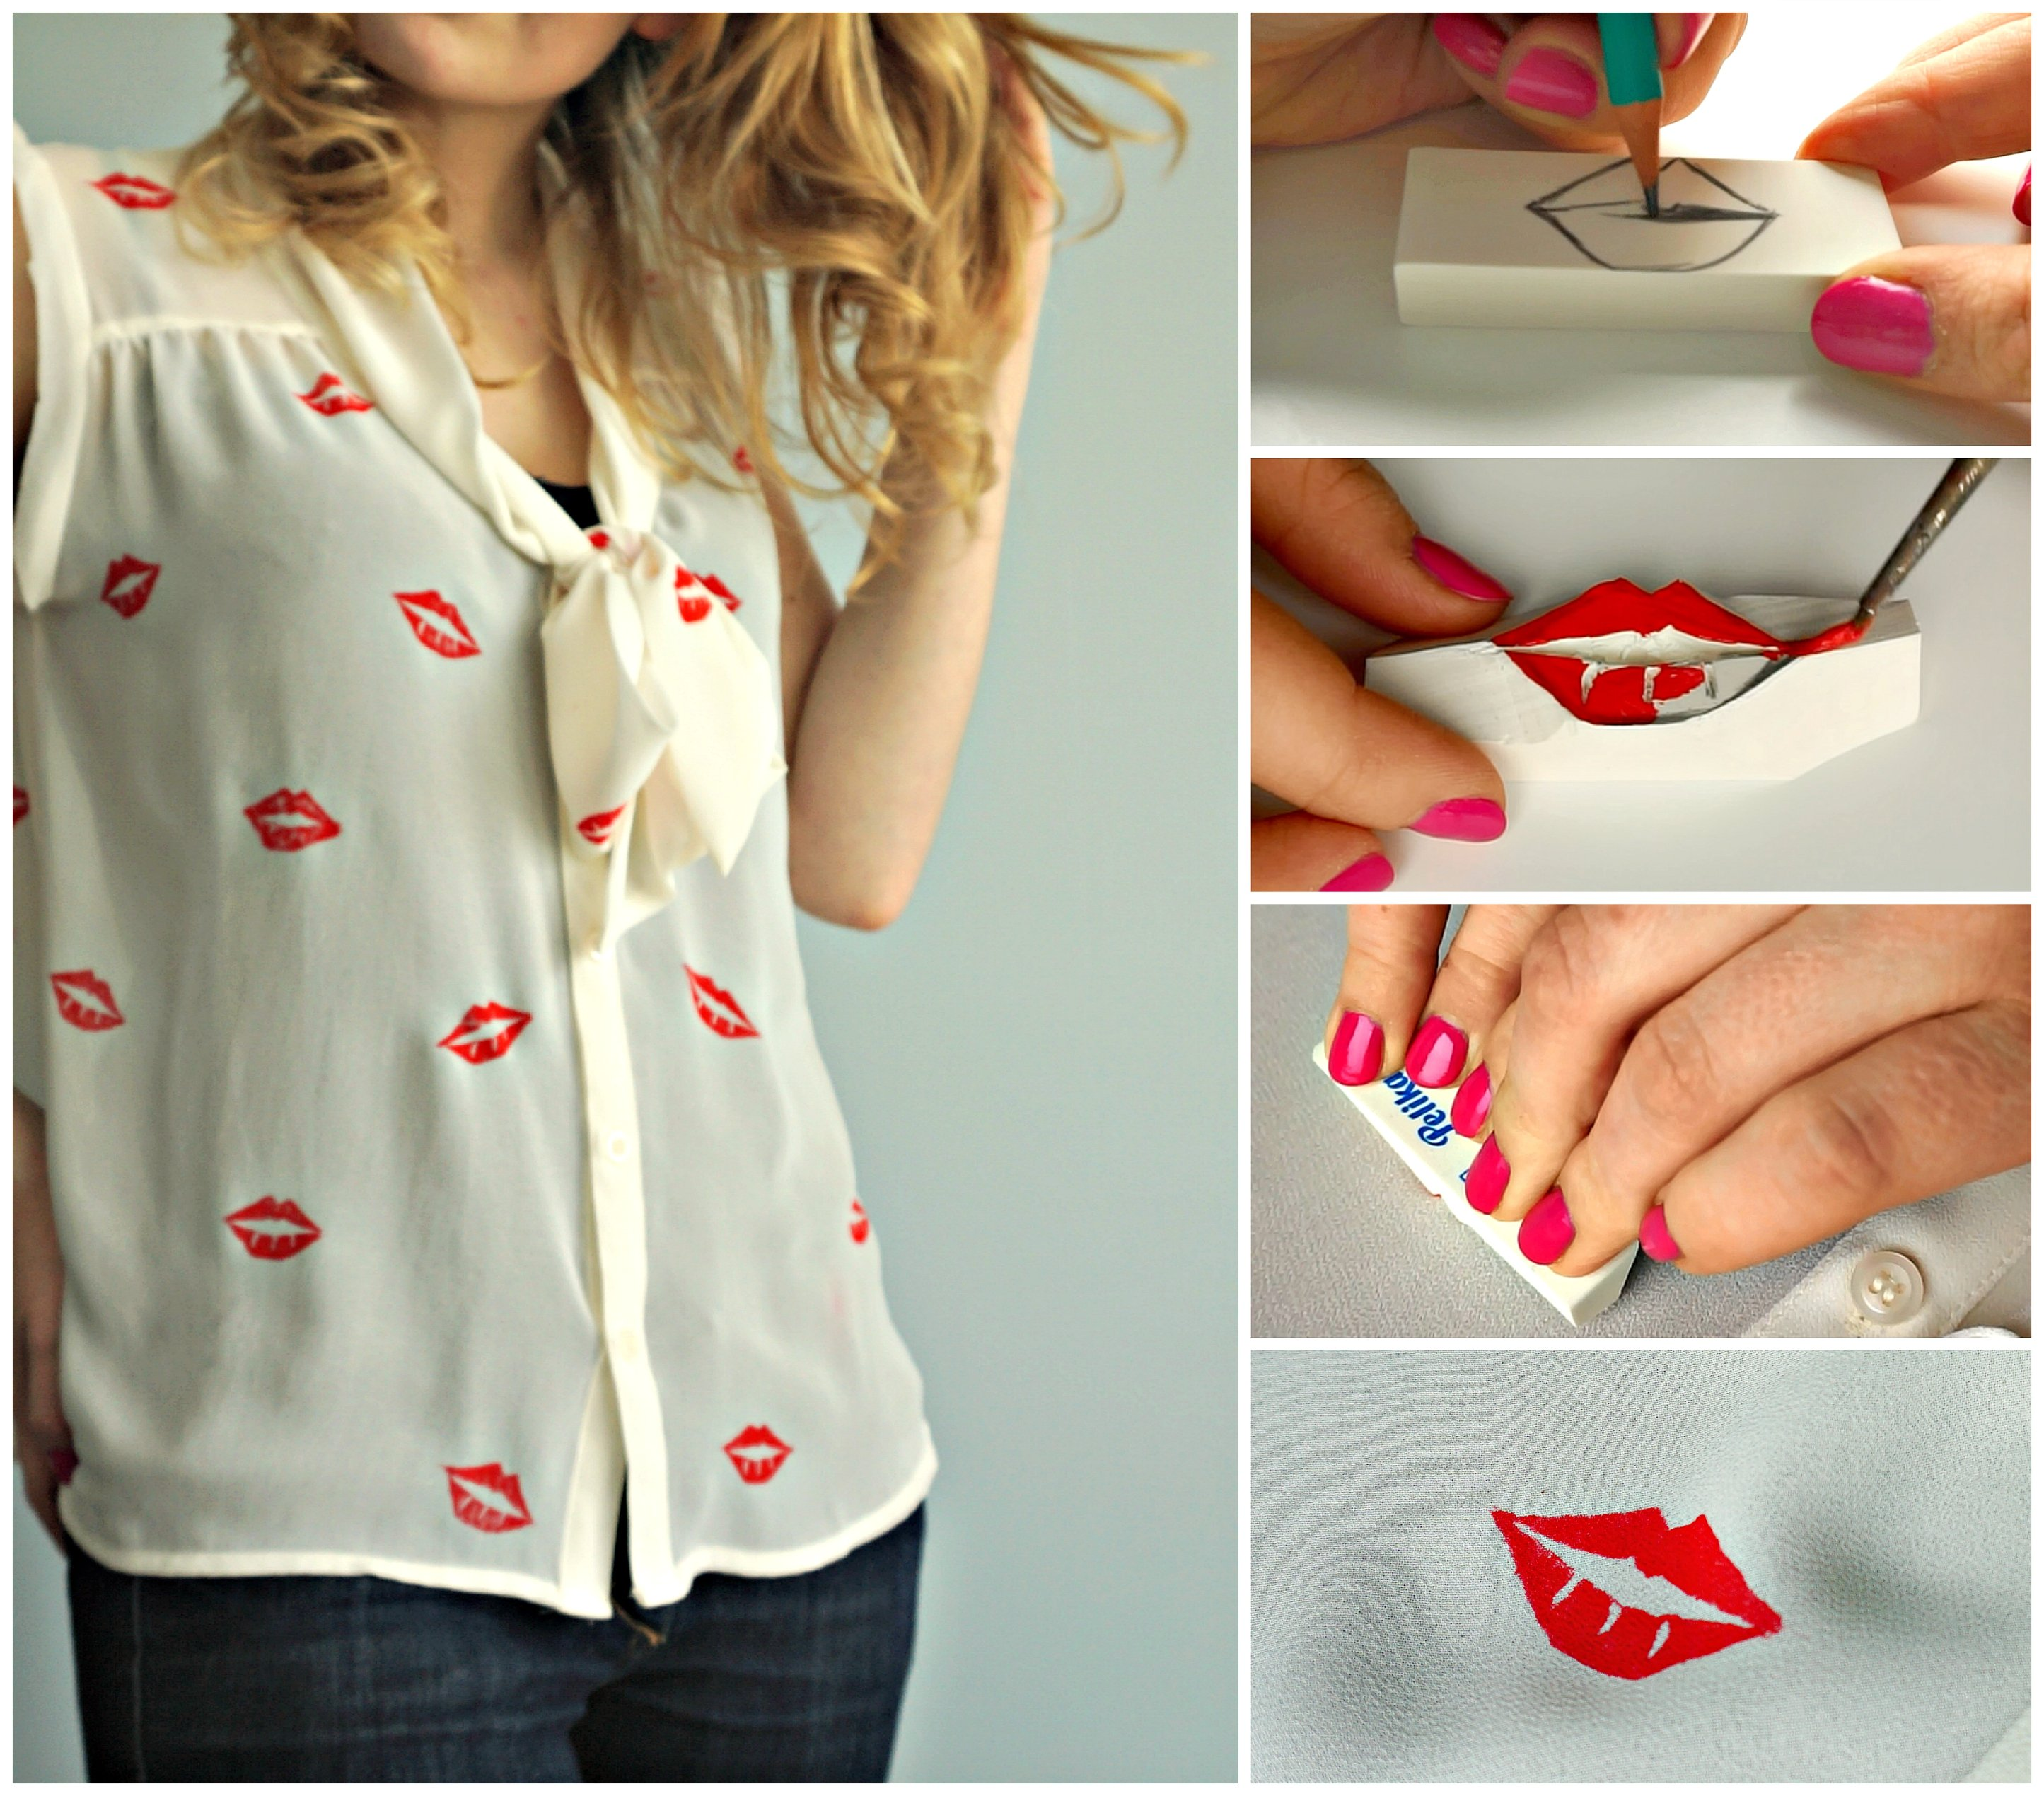 Diy lip stencilled shirt tutorial the makeup dummy for Where can i create my own shirt